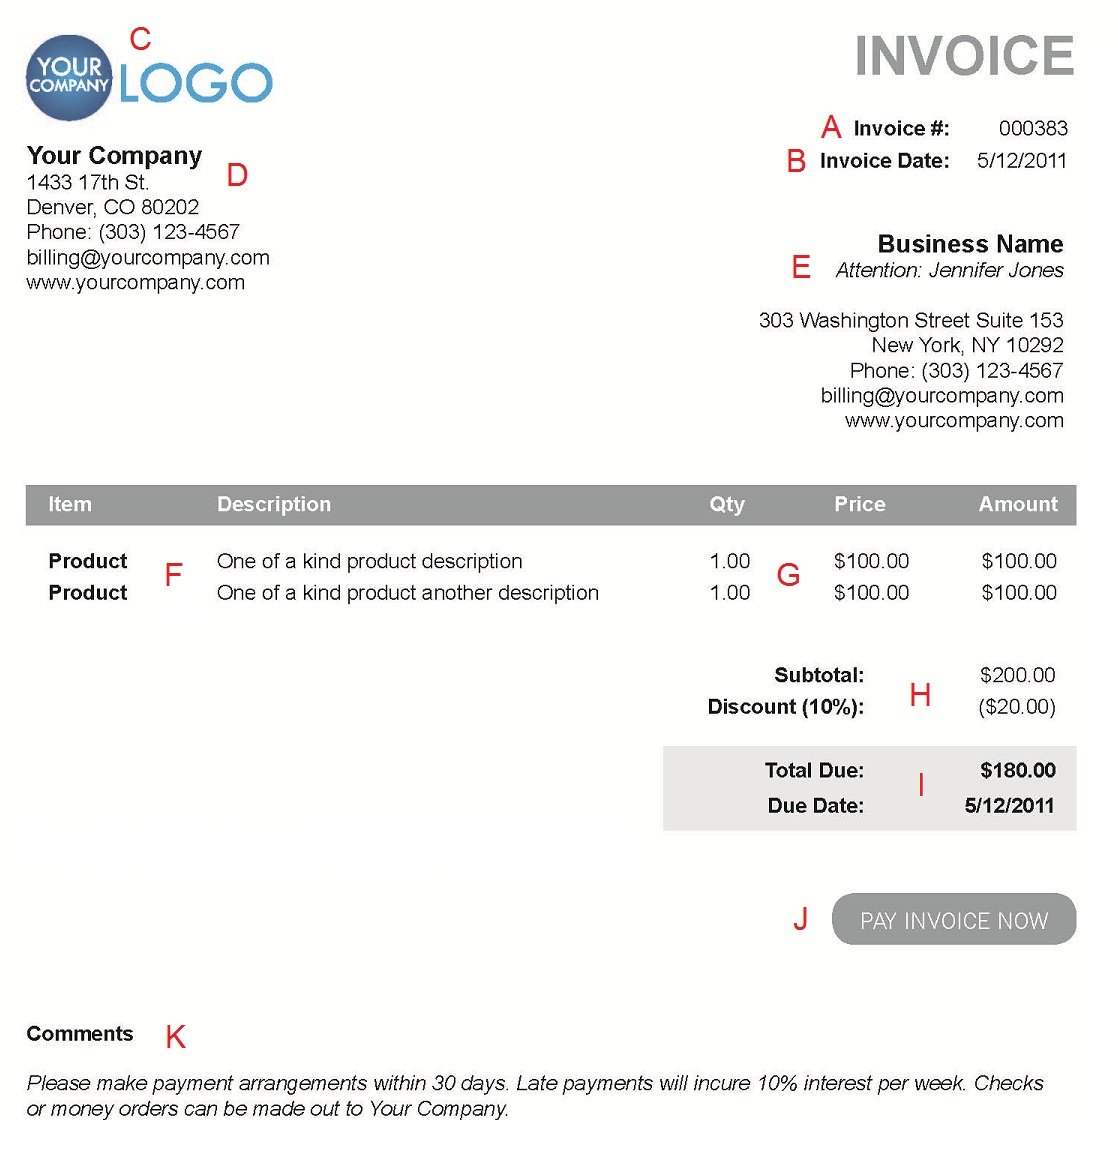 Aaaaeroincus  Unique The  Different Sections Of An Electronic Payment Invoice With Gorgeous A  With Captivating Usmc Cif Receipt Online Also Order Receipt Sample In Addition Is Receipt Hog Safe And Acknowledge Receipt Of This Email As Well As Mobile Bluetooth Receipt Printer Additionally Snap And Store Receipts From Paysimplecom With Aaaaeroincus  Gorgeous The  Different Sections Of An Electronic Payment Invoice With Captivating A  And Unique Usmc Cif Receipt Online Also Order Receipt Sample In Addition Is Receipt Hog Safe From Paysimplecom